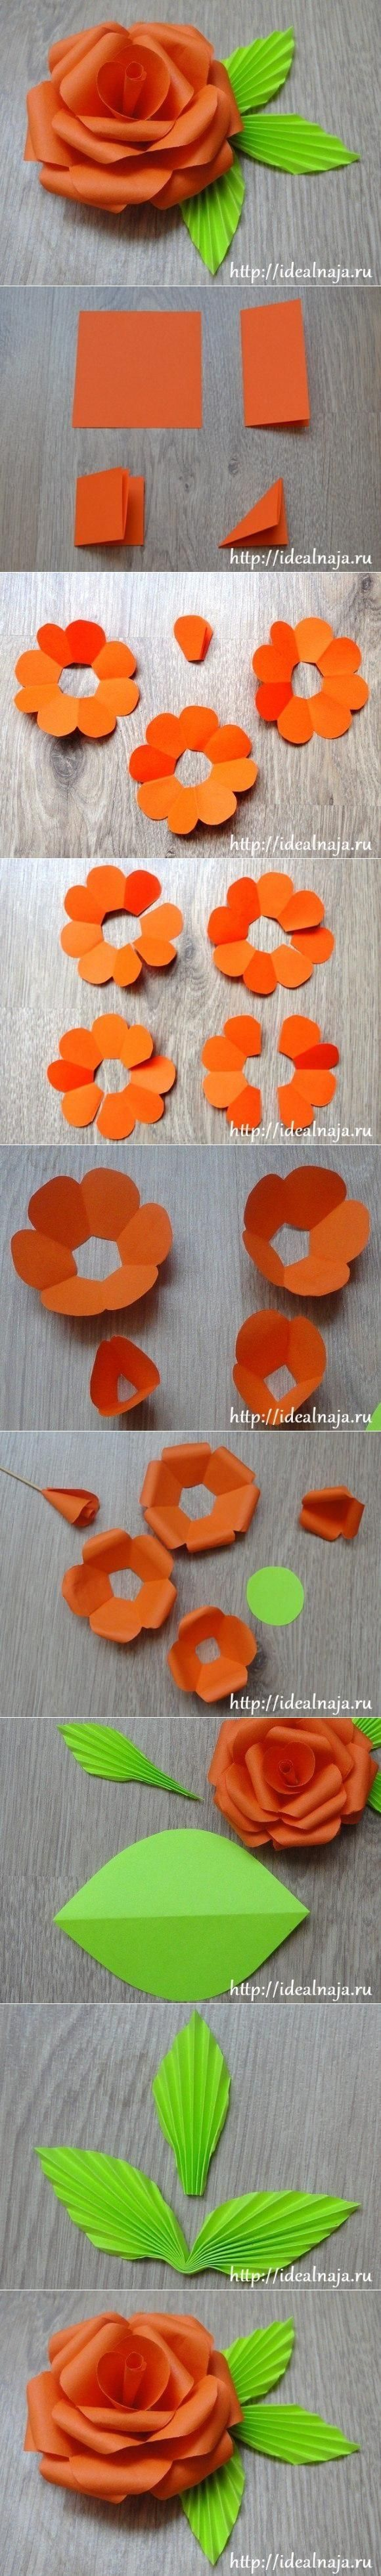 DIY Flowers | DIY Fun Tips